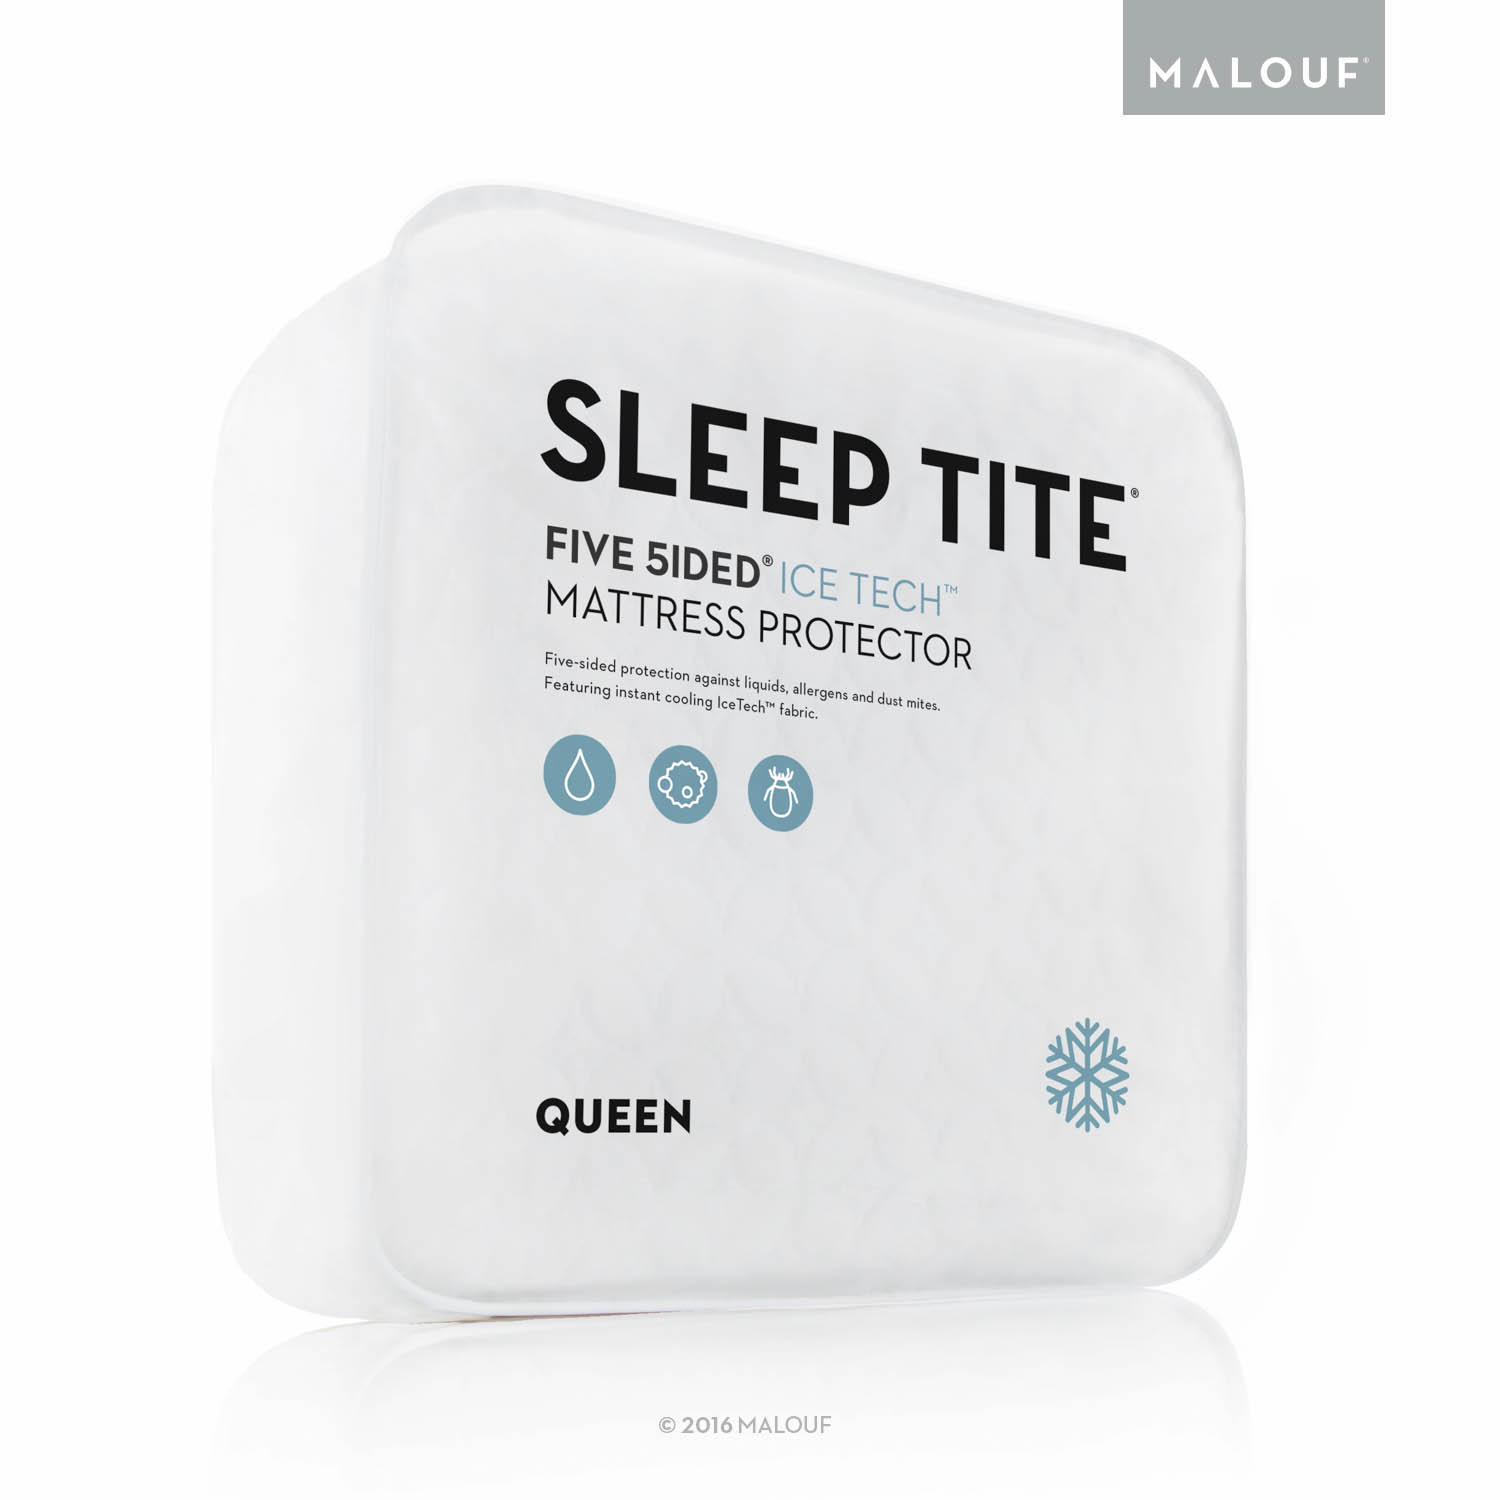 Malouf Sleep Tite Five Sided IceTech Waterproof Mattress Protector with Cooling Technology - Full XL